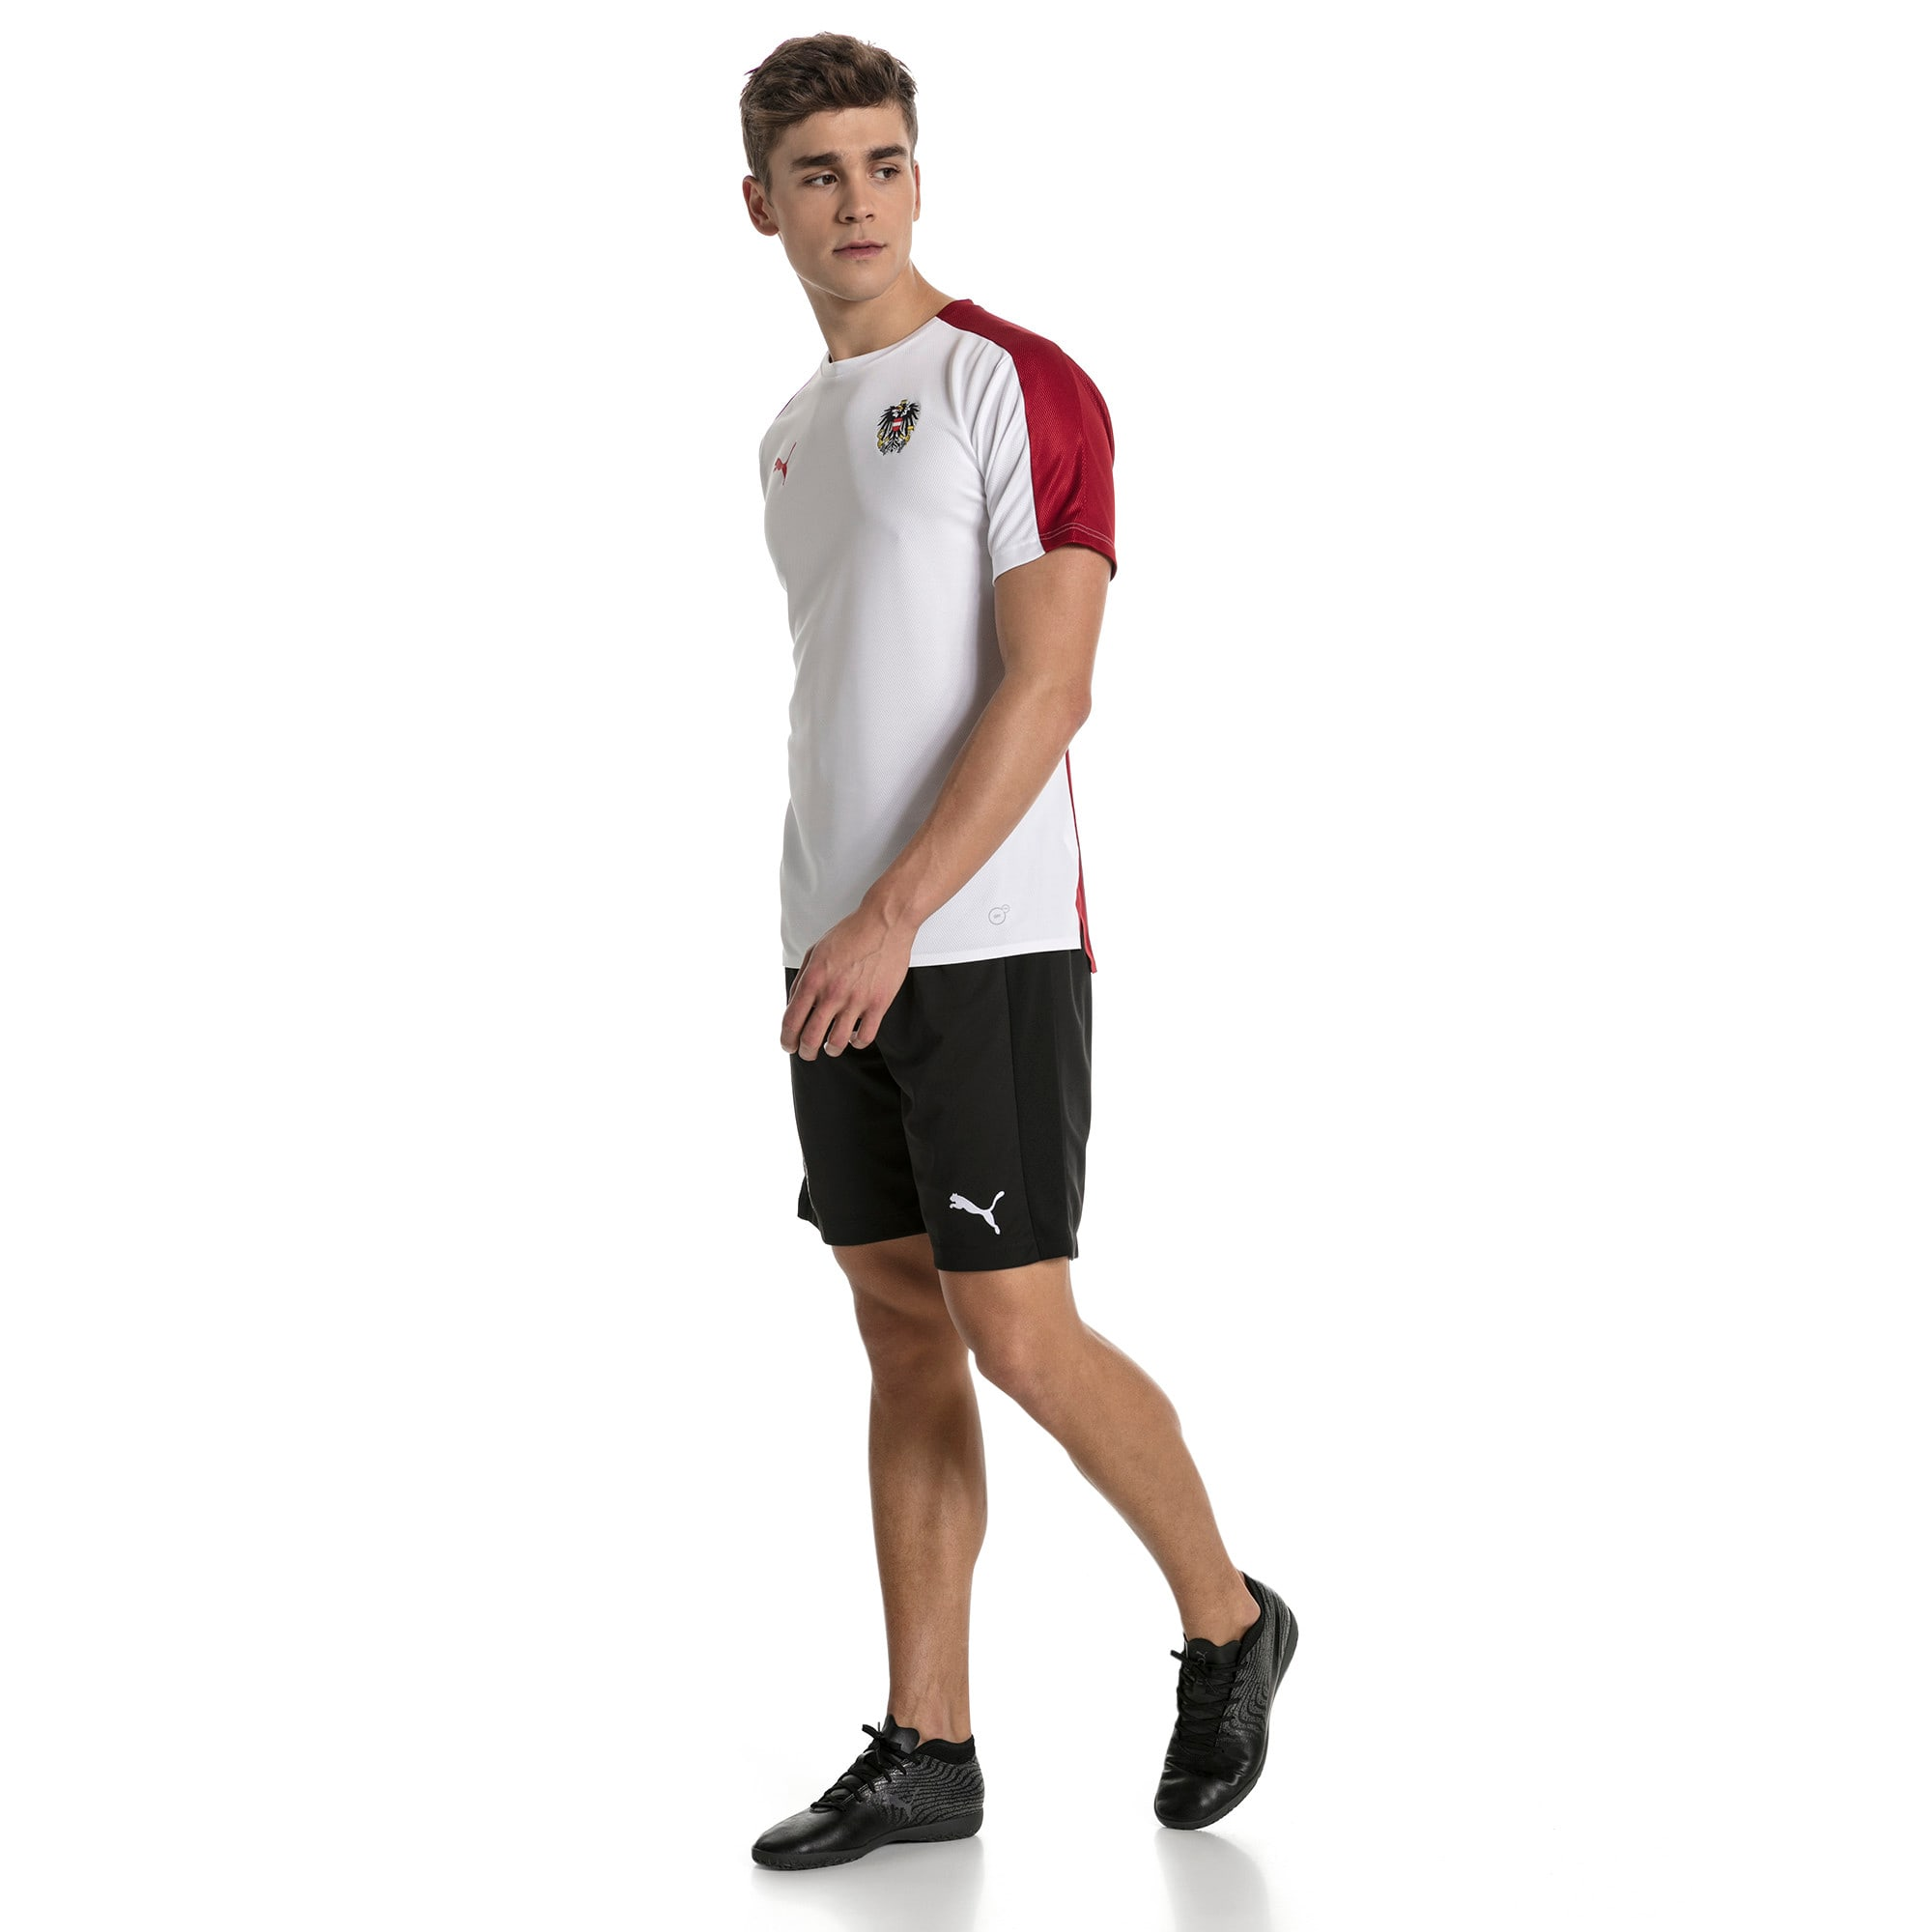 Thumbnail 5 of Austria Men's Stadium Jersey, Puma White-Red Dahlia, medium